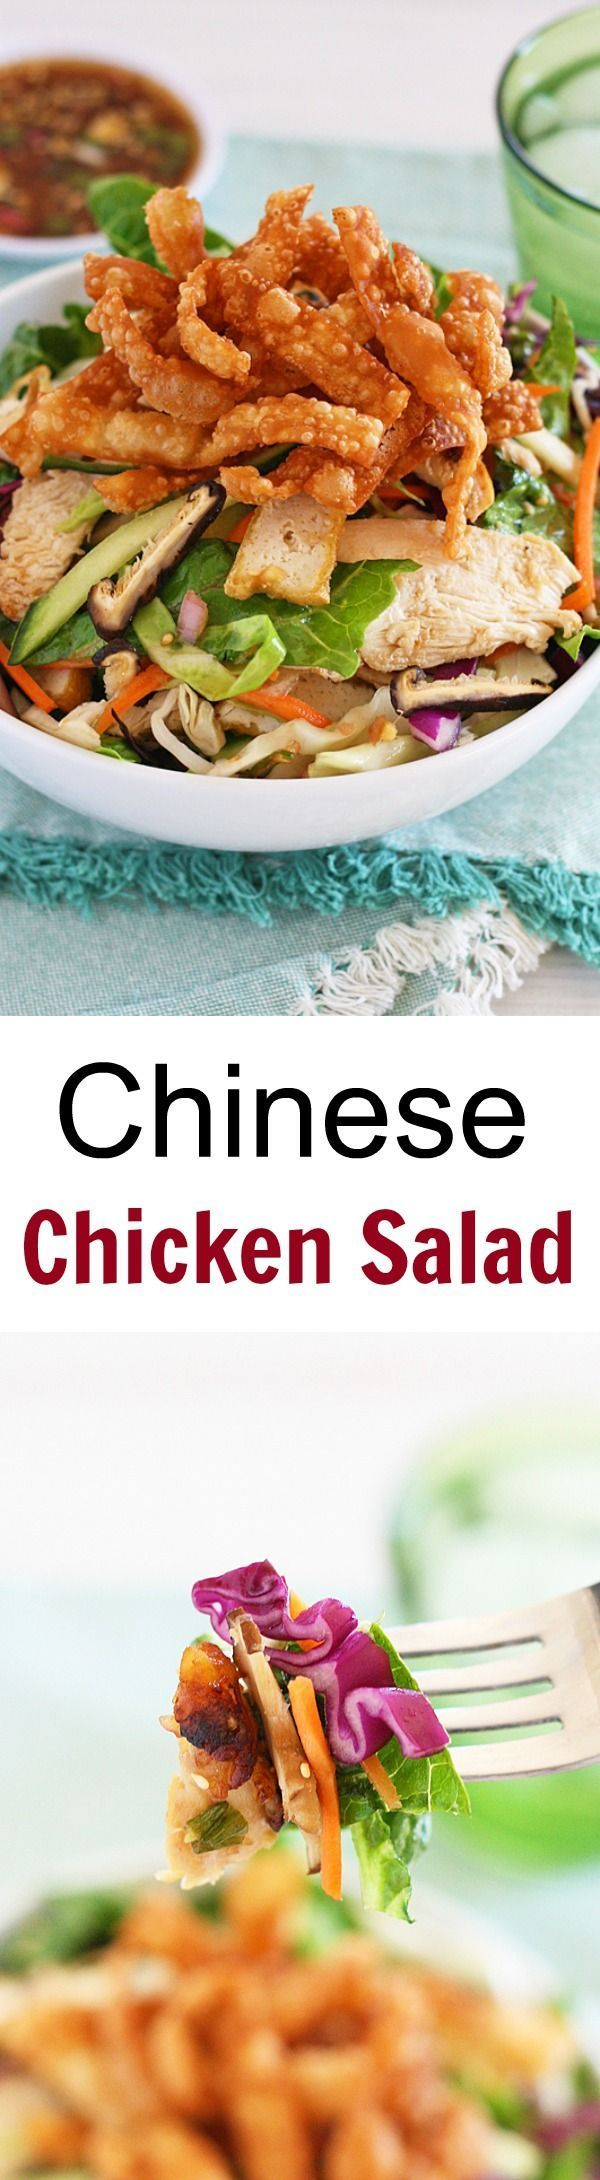 A chicken salad recipe that is healthy and so easy to make. It tastes so good you'll want to eat this Chinese chicken salad every day   http://rasamalaysia.com